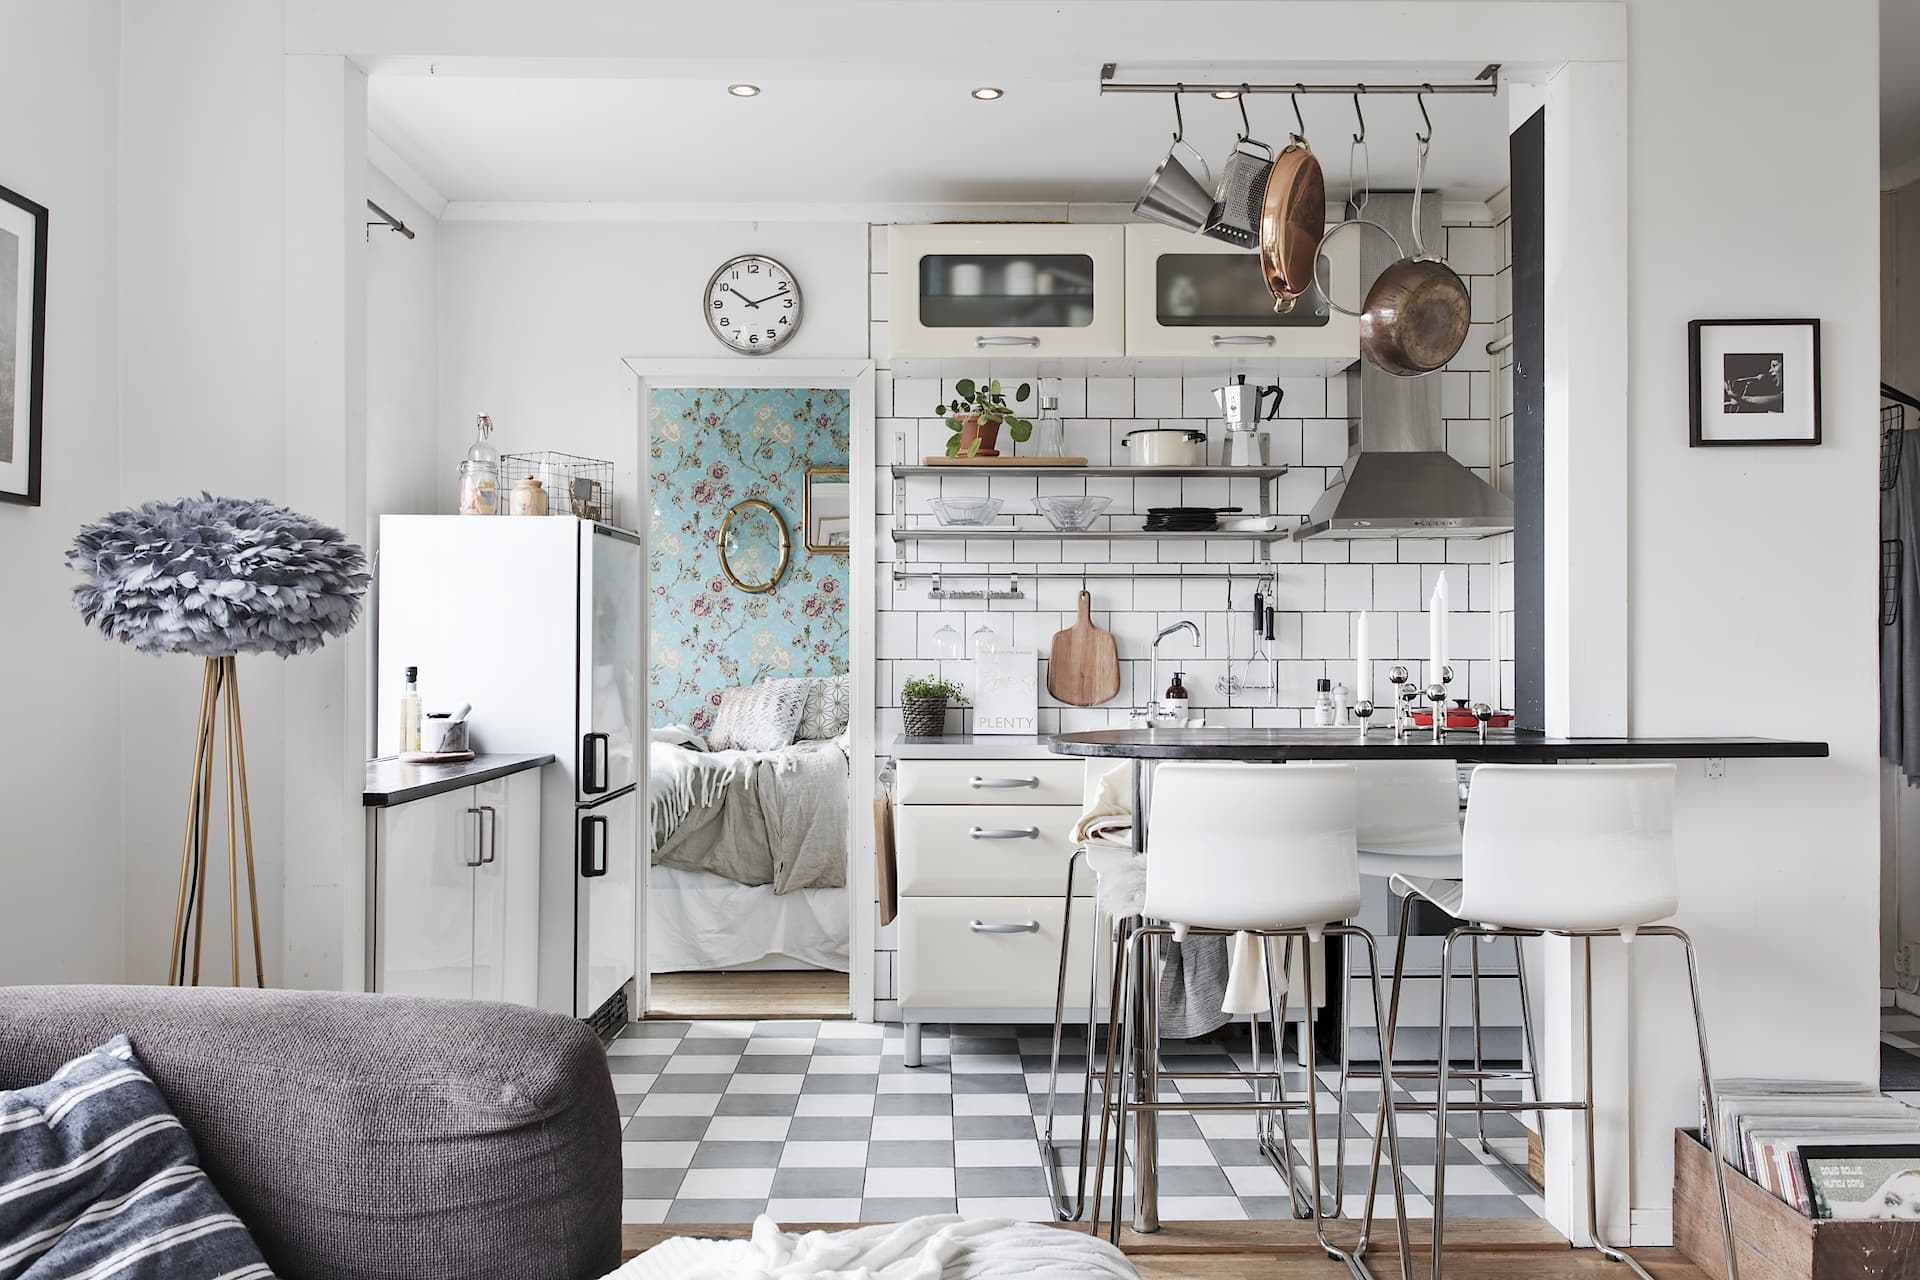 Kitchen in a small flat